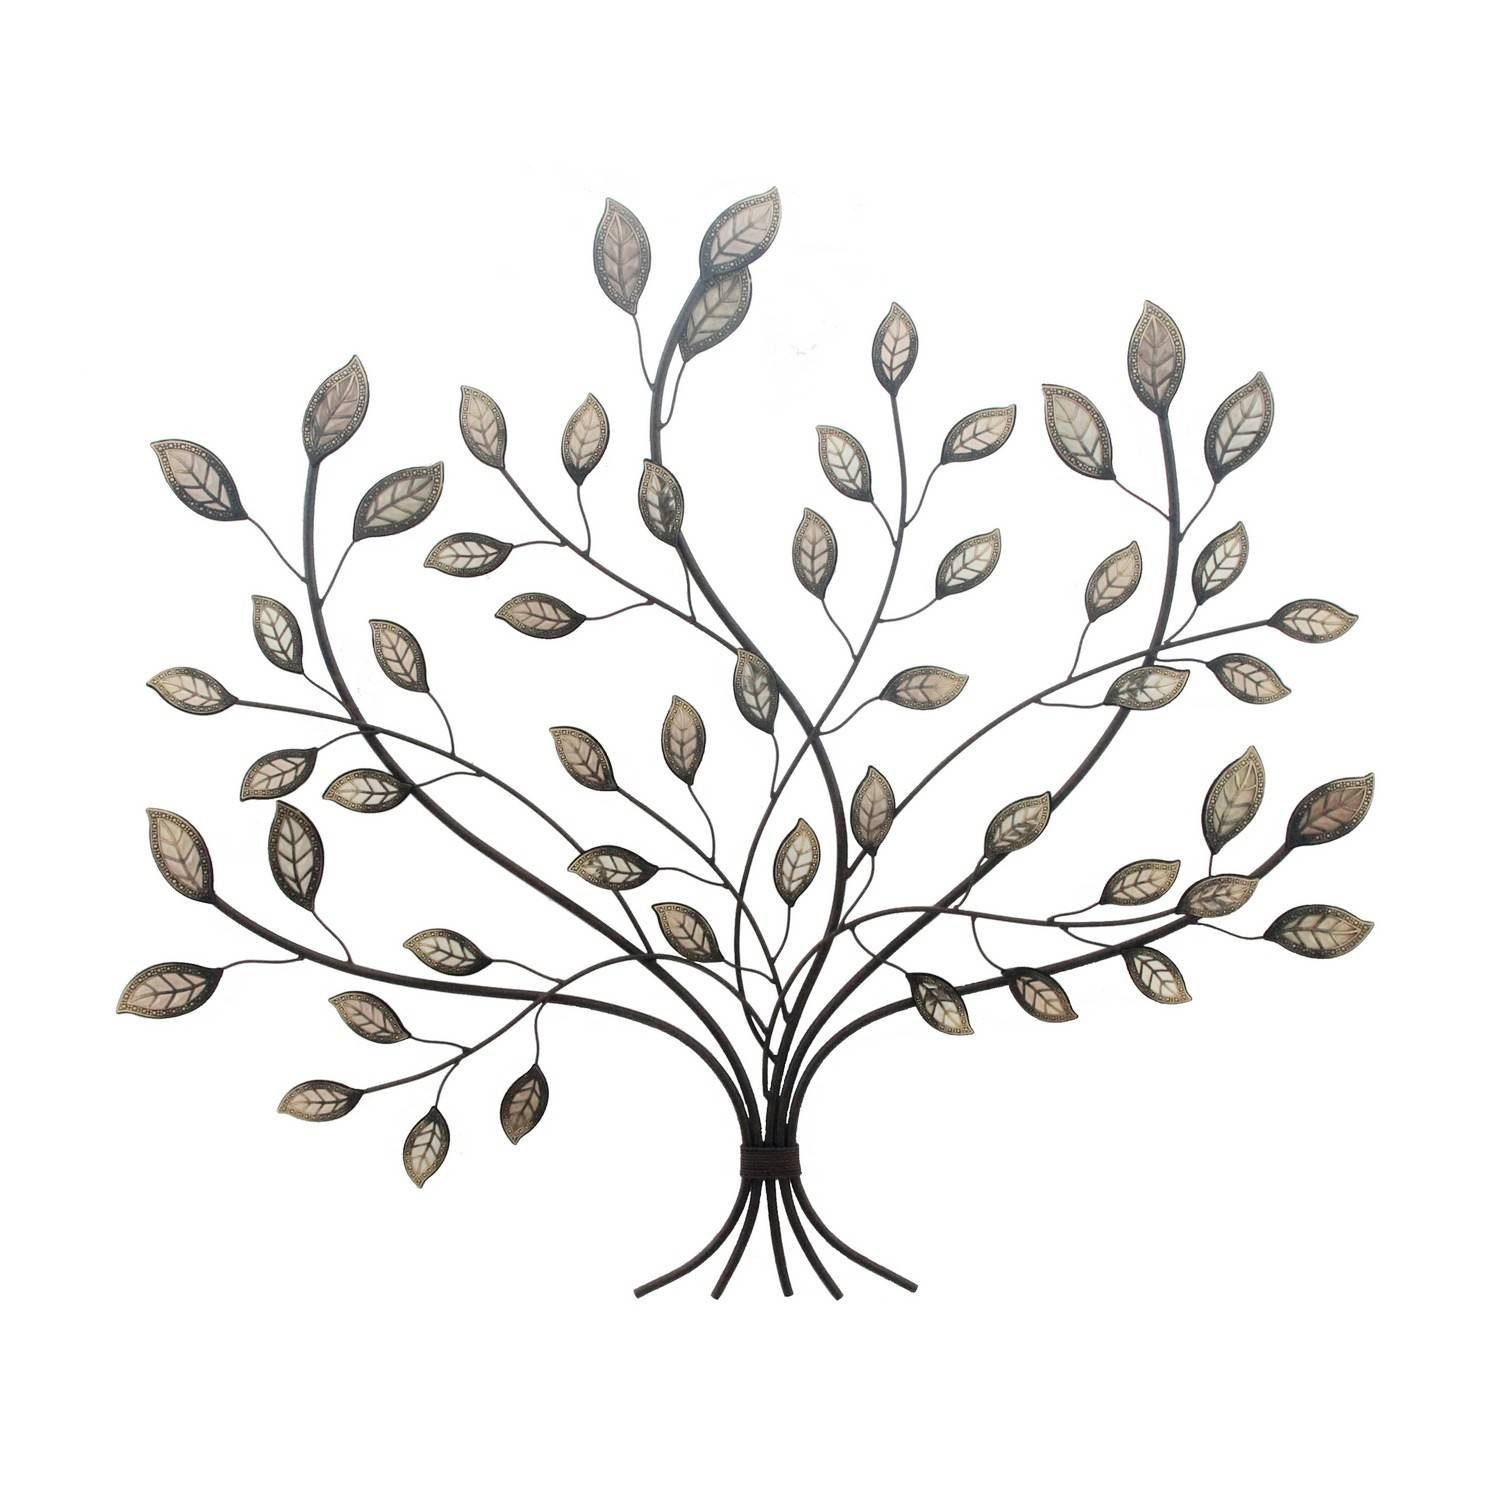 Wall Art Designs: Leaf Wall Art Wall Art Hanging Rustic Bronze For Best And Newest Leaves Metal Wall Art (View 13 of 20)